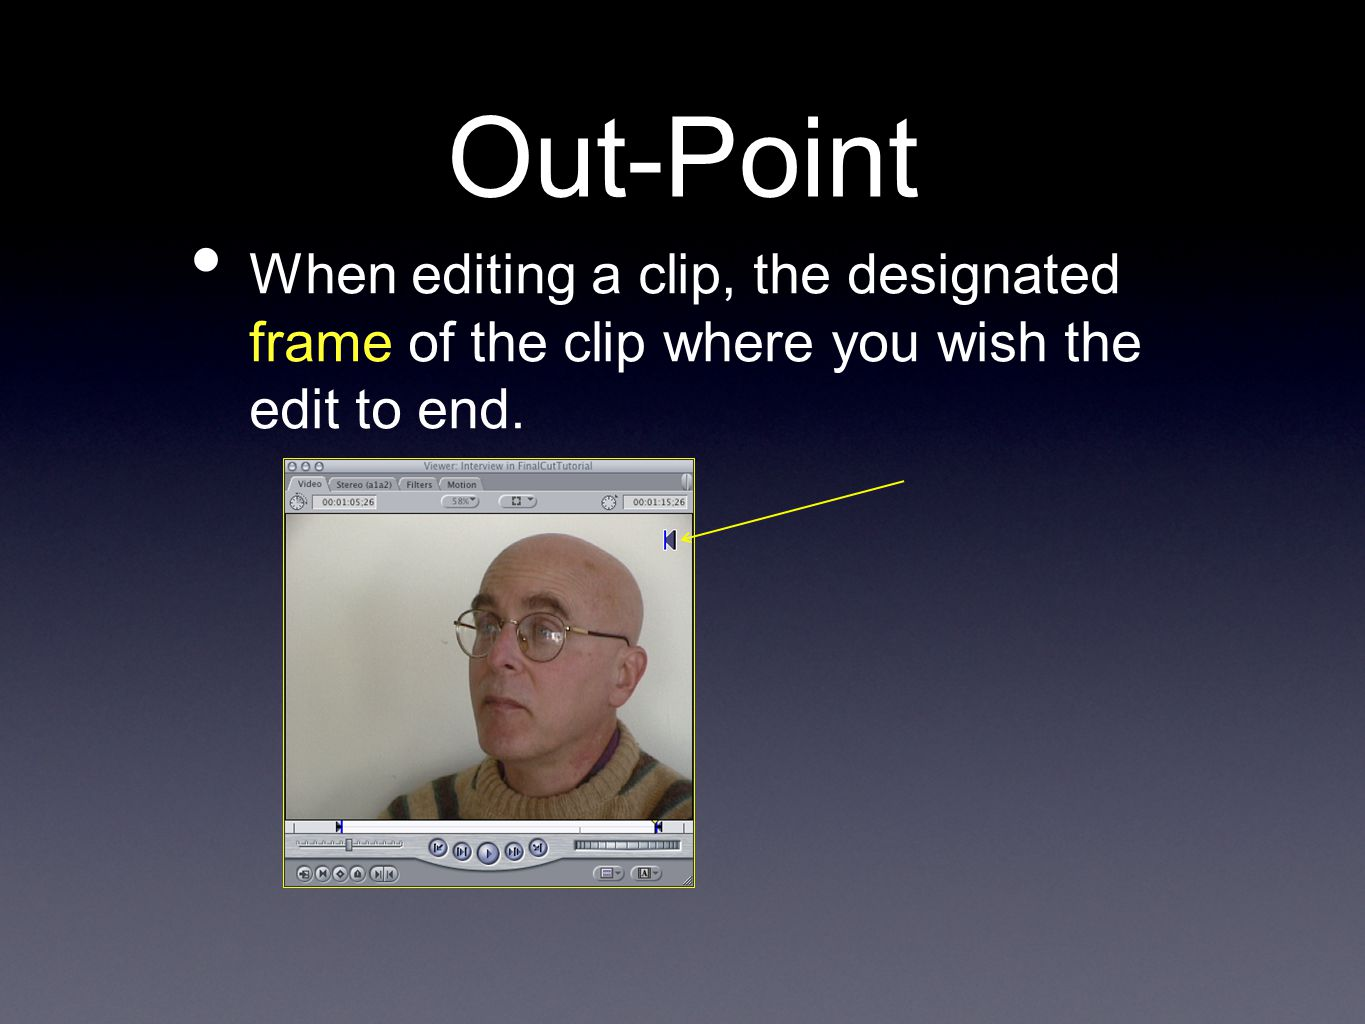 Out-Point When editing a clip, the designated frame of the clip where you wish the edit to end.